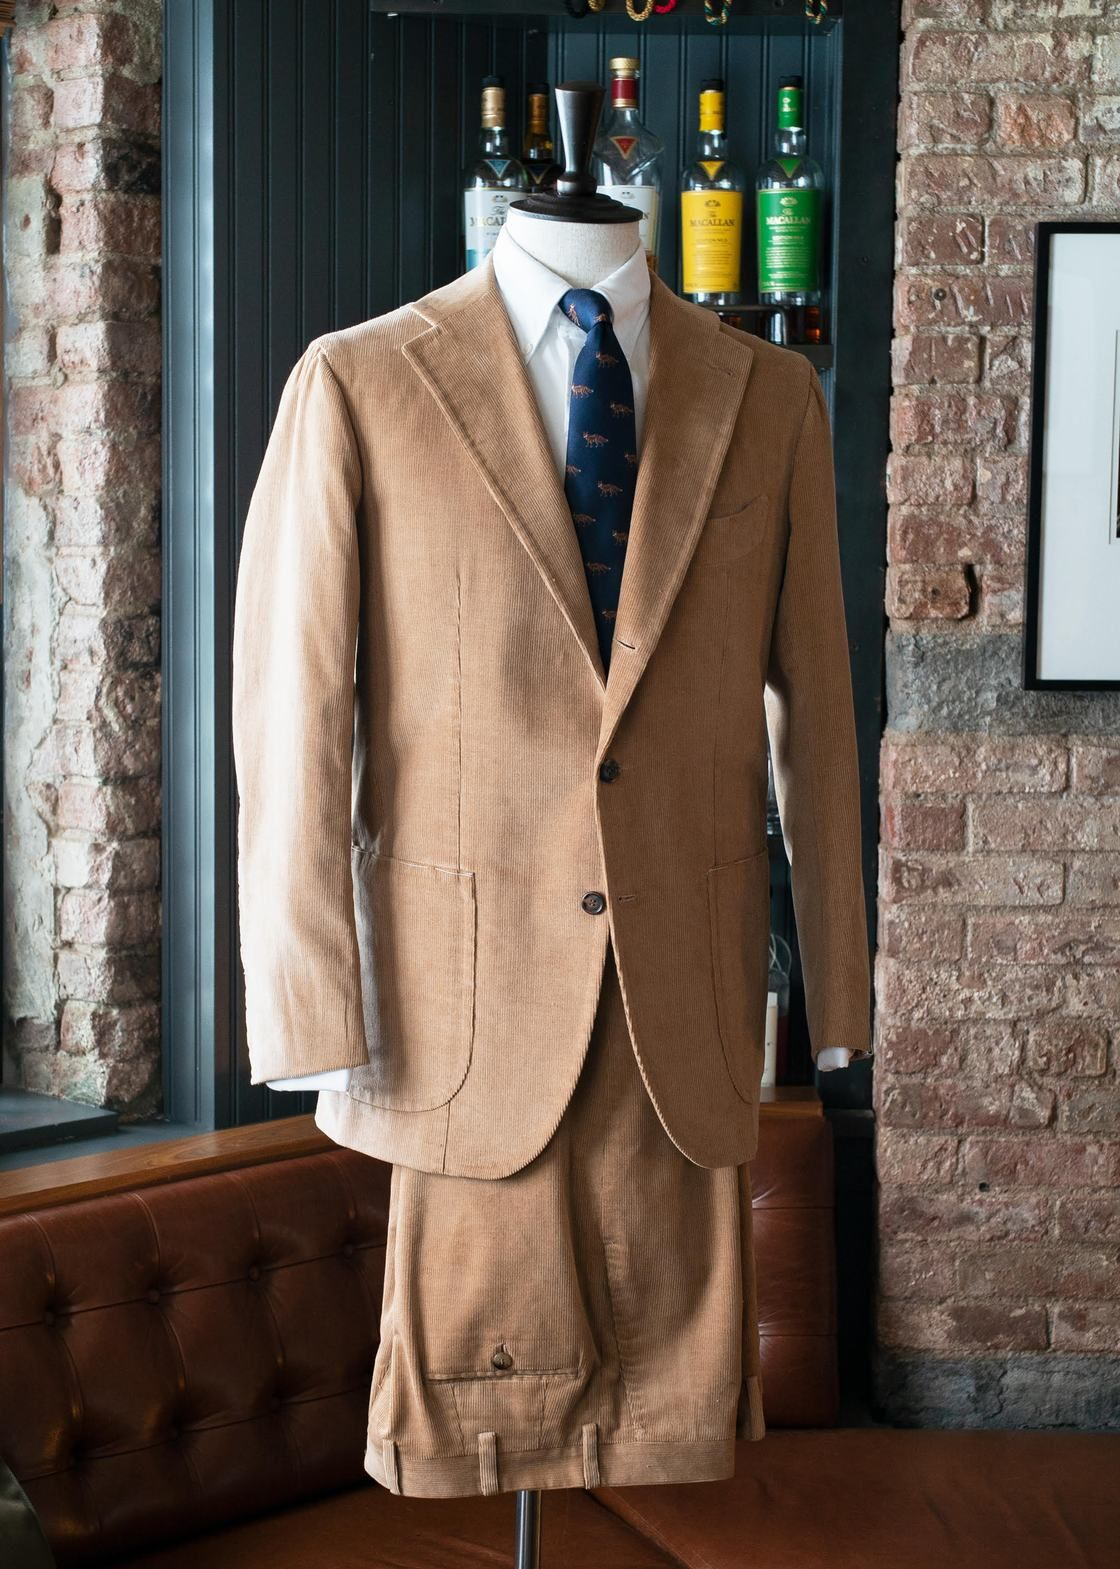 1f807700acfe99 Orazio Luciano Corduroy Suit in 2019 | That Ivy League Look | Suits ...